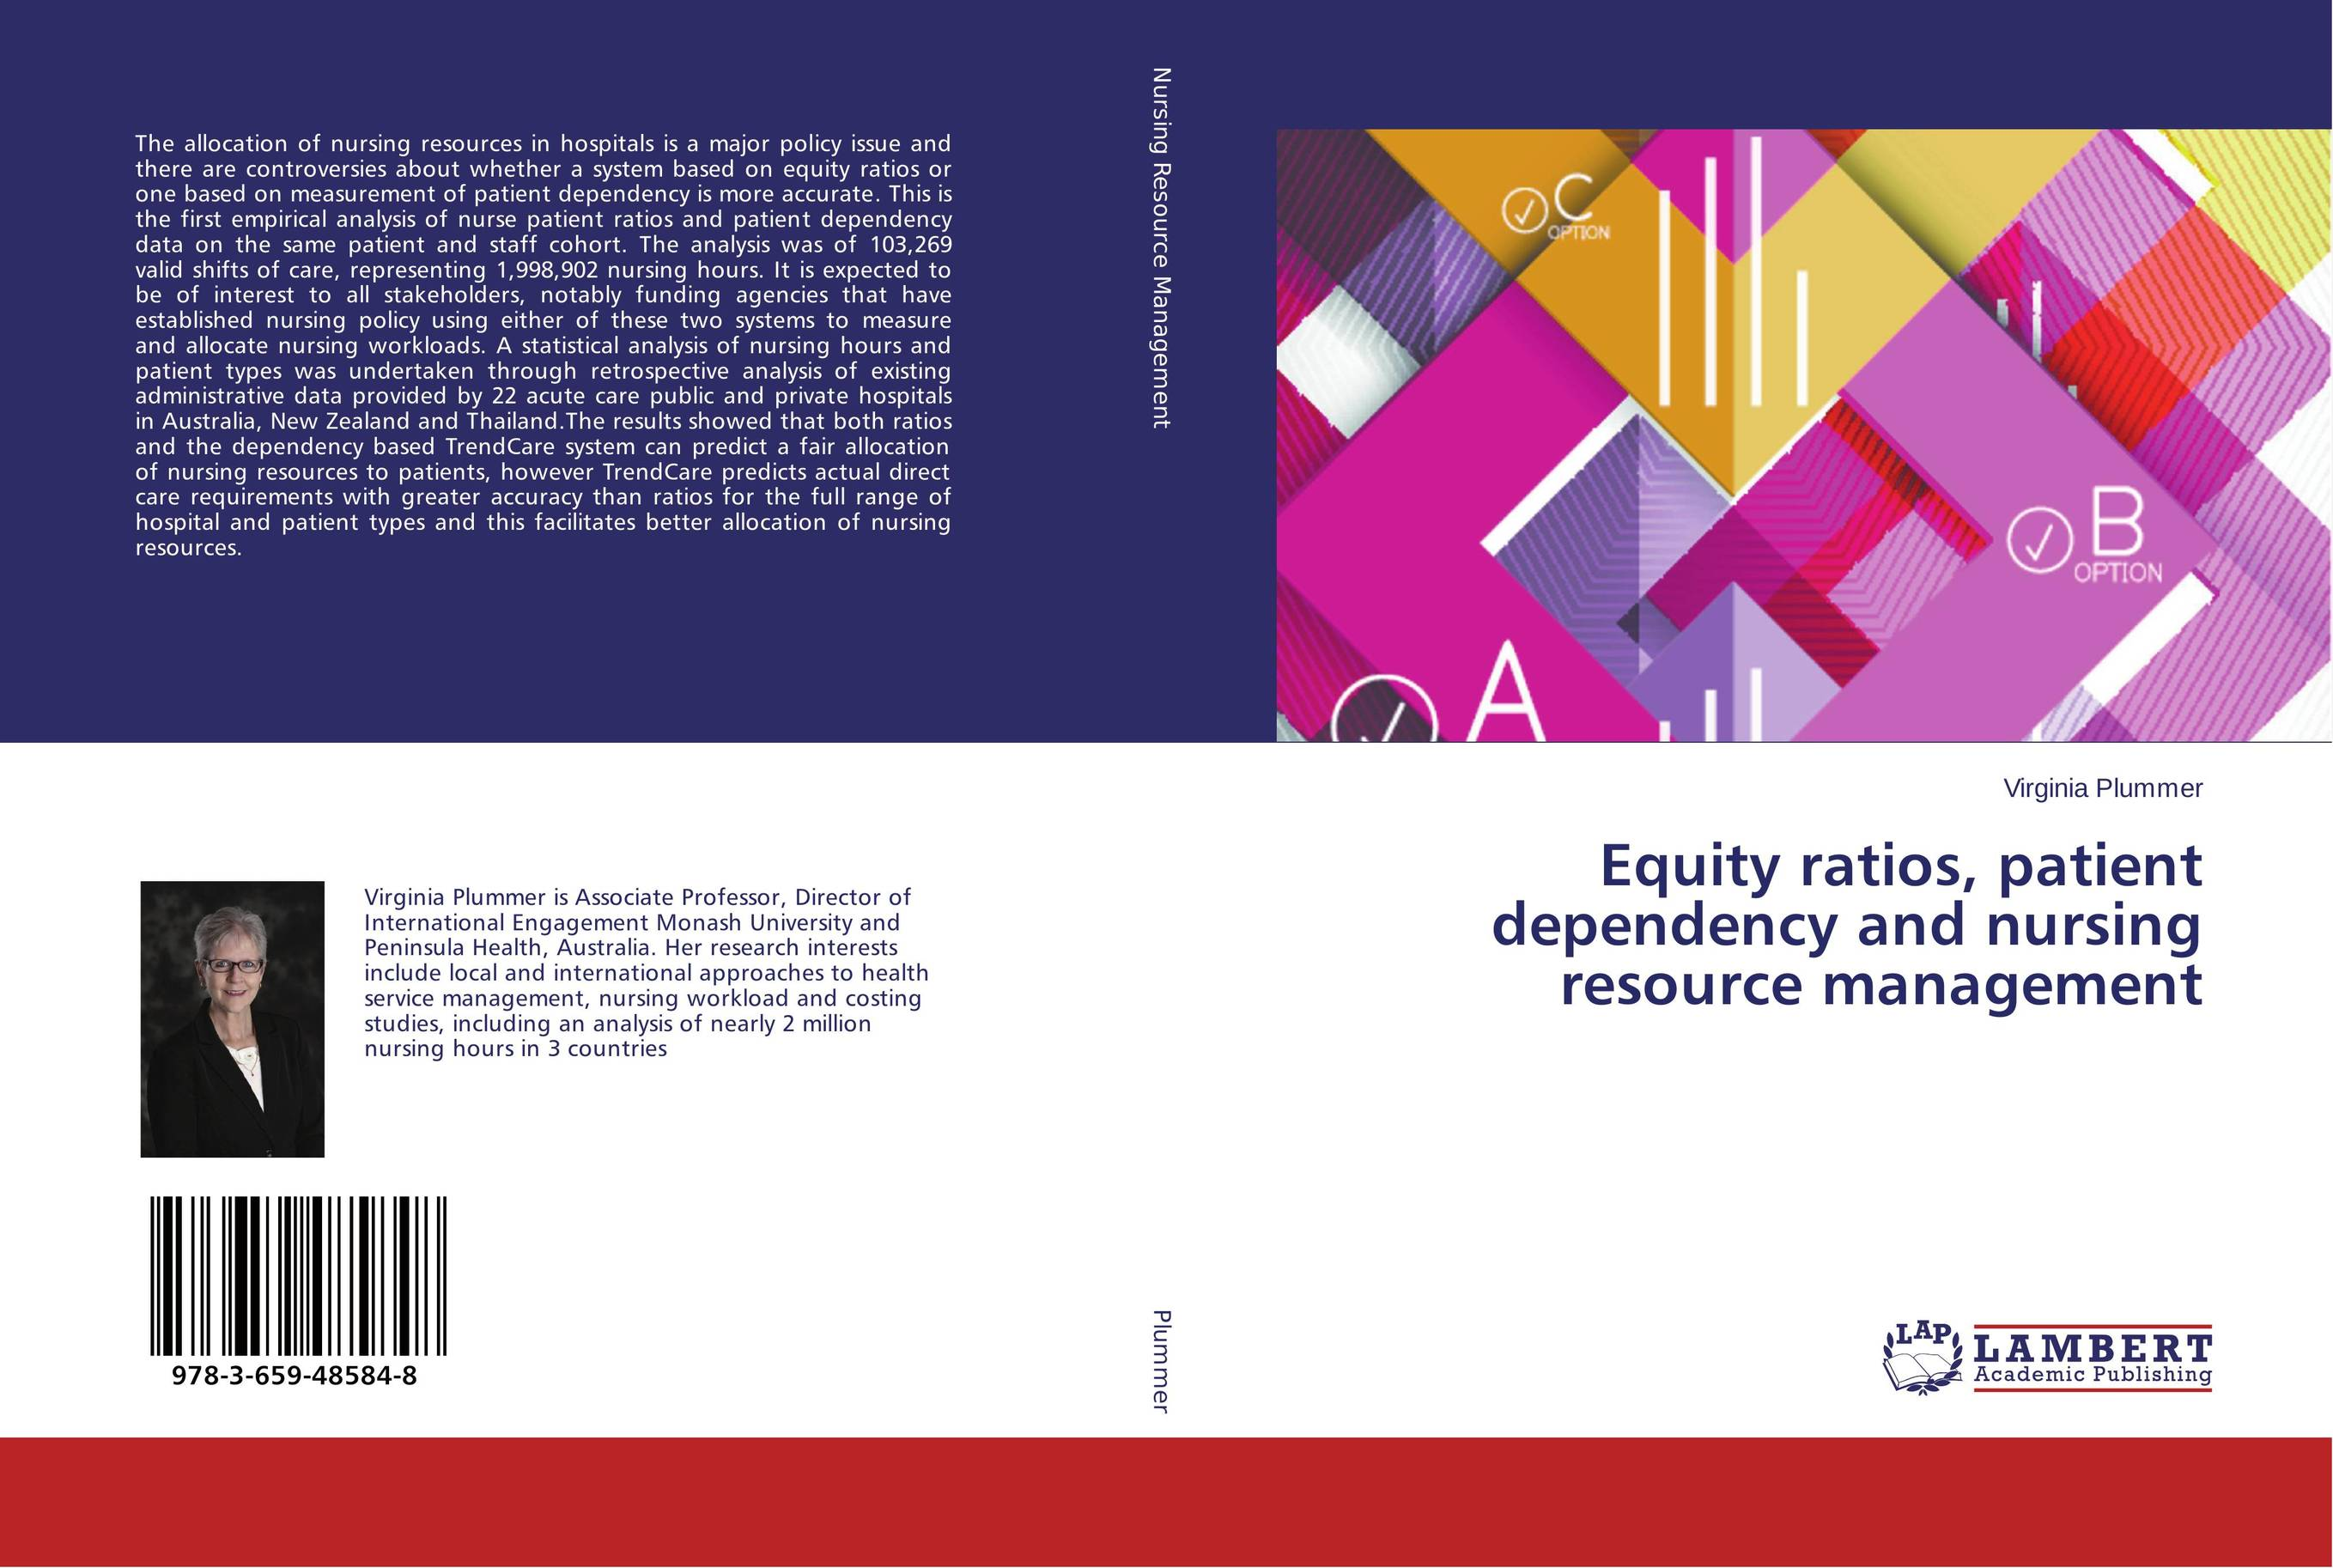 Equity ratios, patient dependency and nursing resource management analysis of patient satisfaction